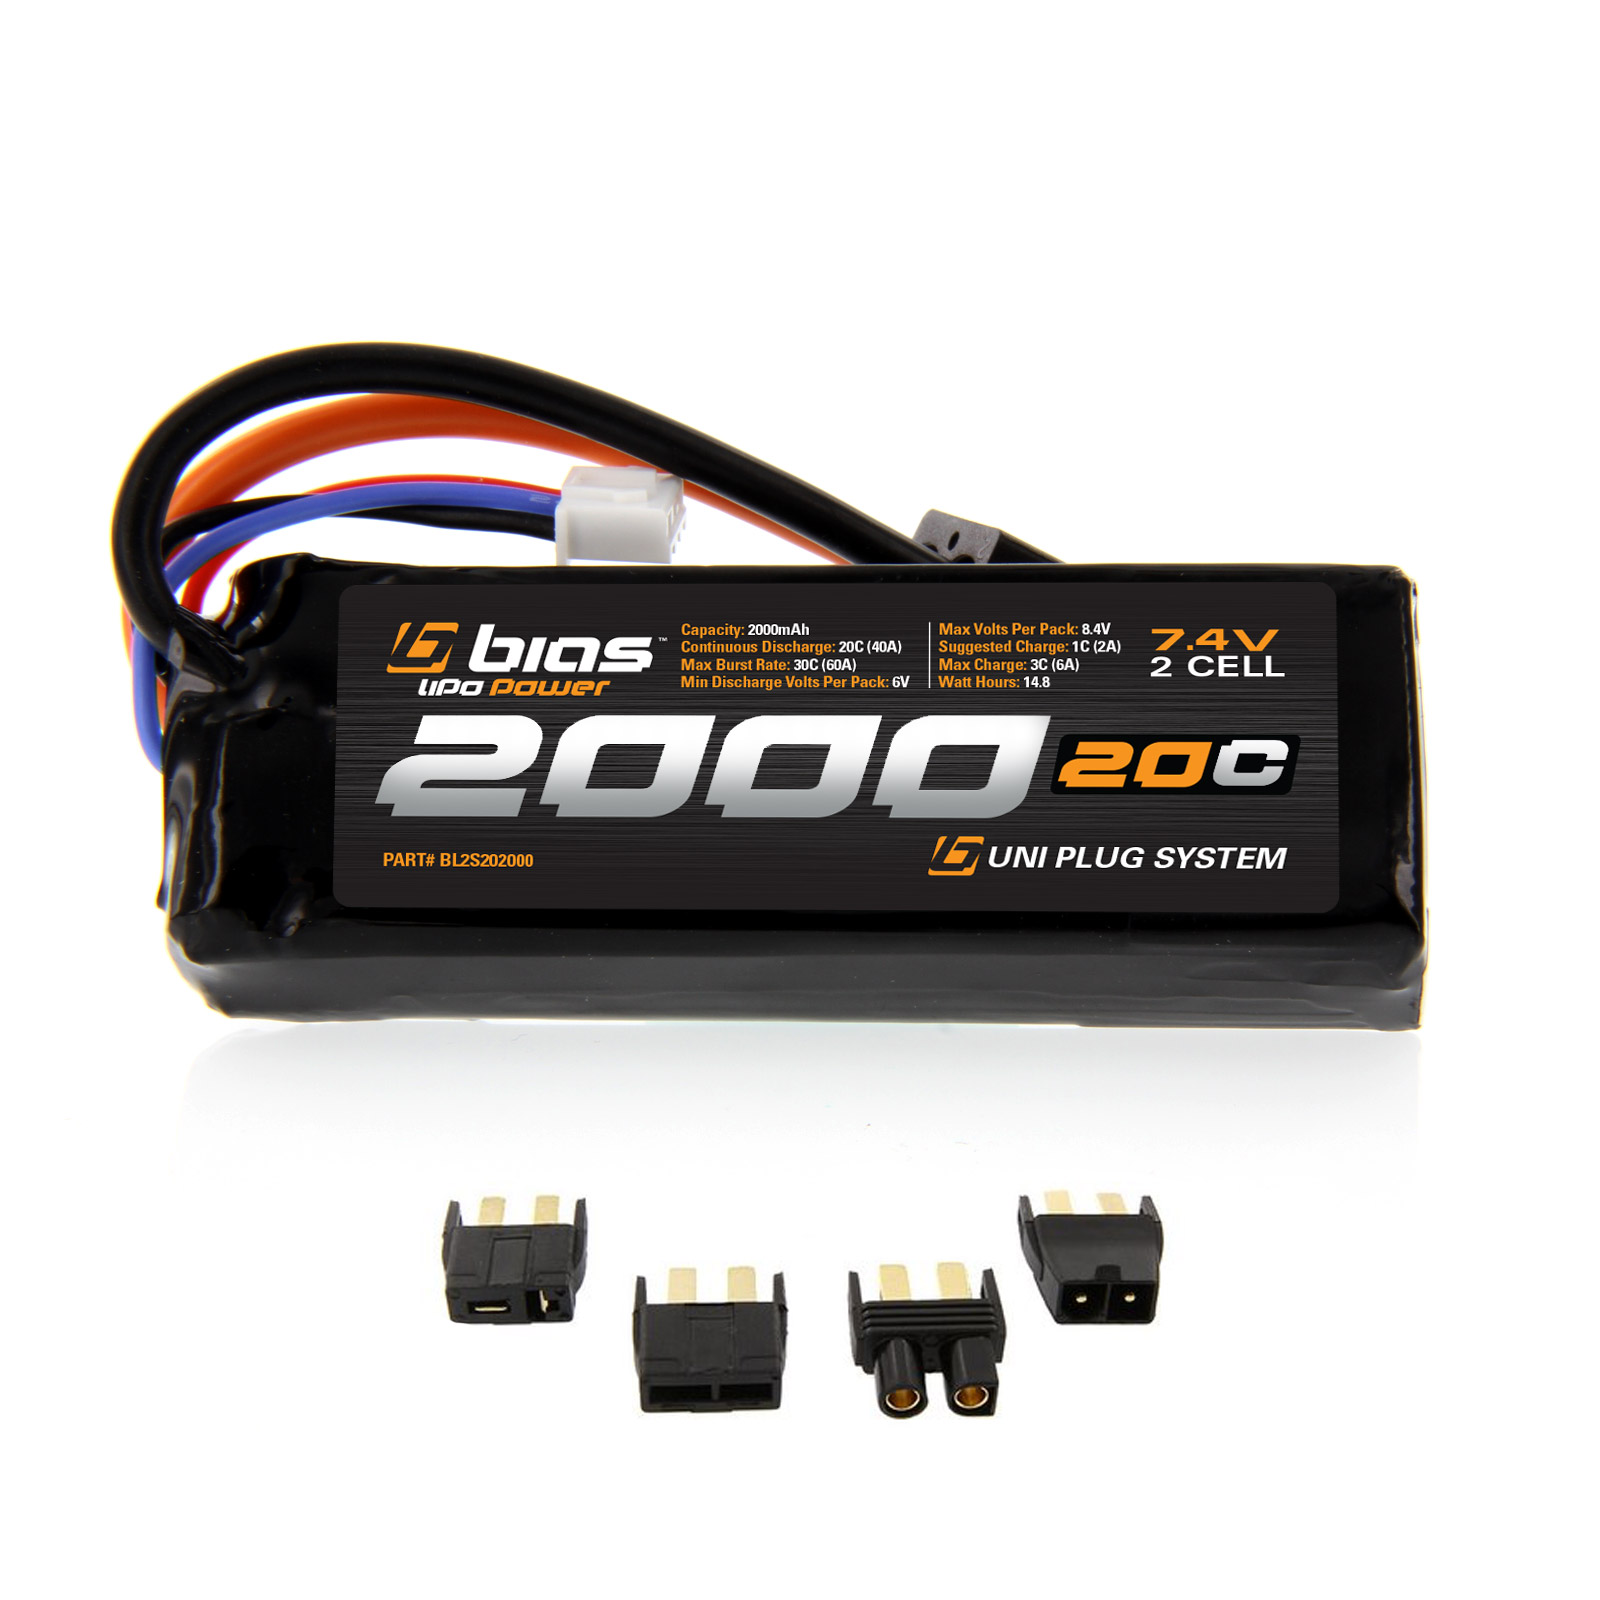 Bias LiPo Battery for Traxxas 1/16 Rally VXL 20C 2S 2000mAh 7.4V LiPo (EC3/Deans/Traxxas/Tamiya Plug) for RC Car, Truck, Buggy, Boat, Heli, and Drone